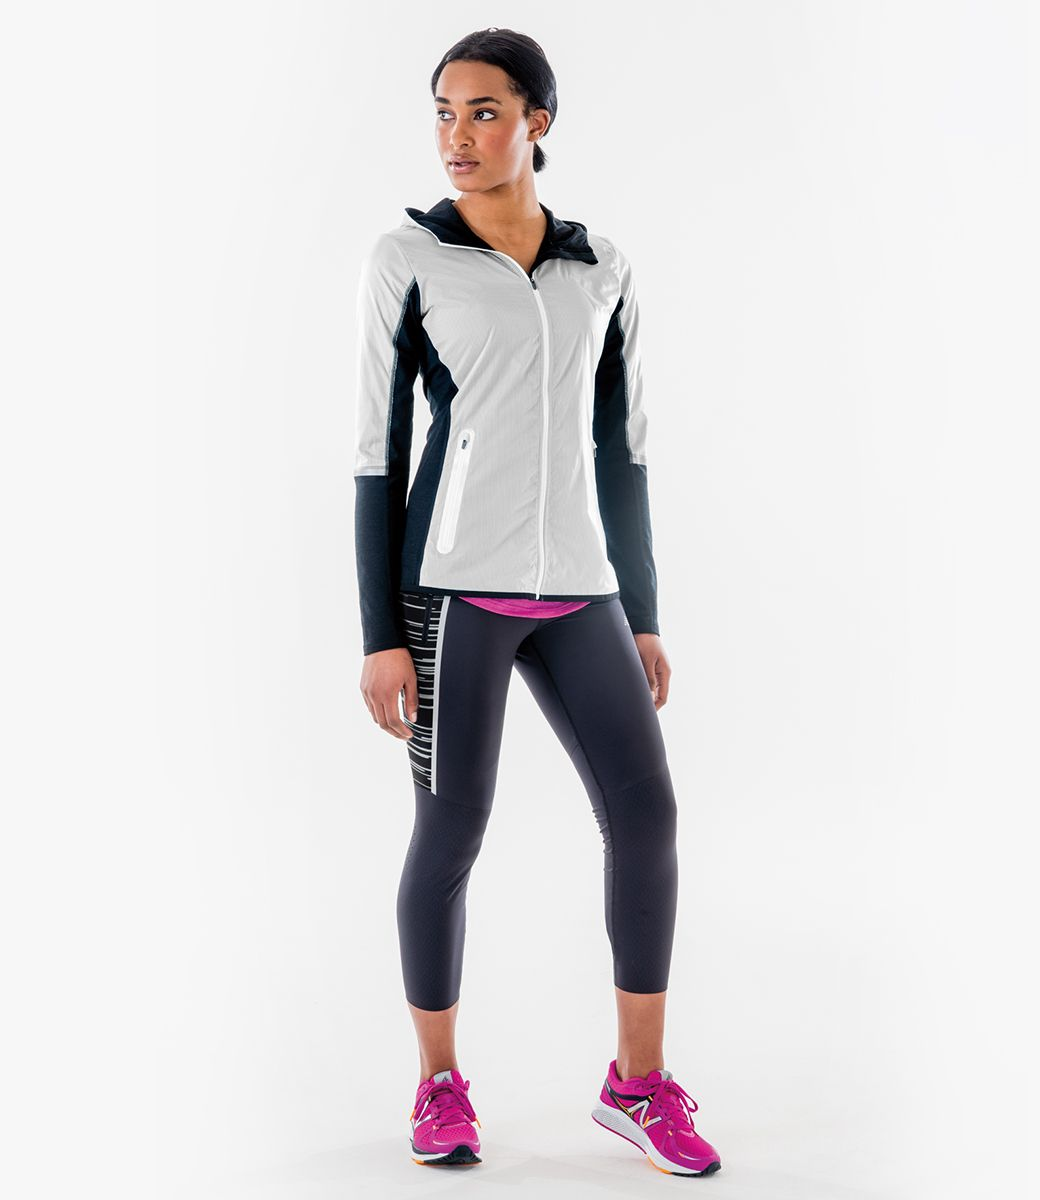 New Balance Womens Vazee Prism and Key Look,